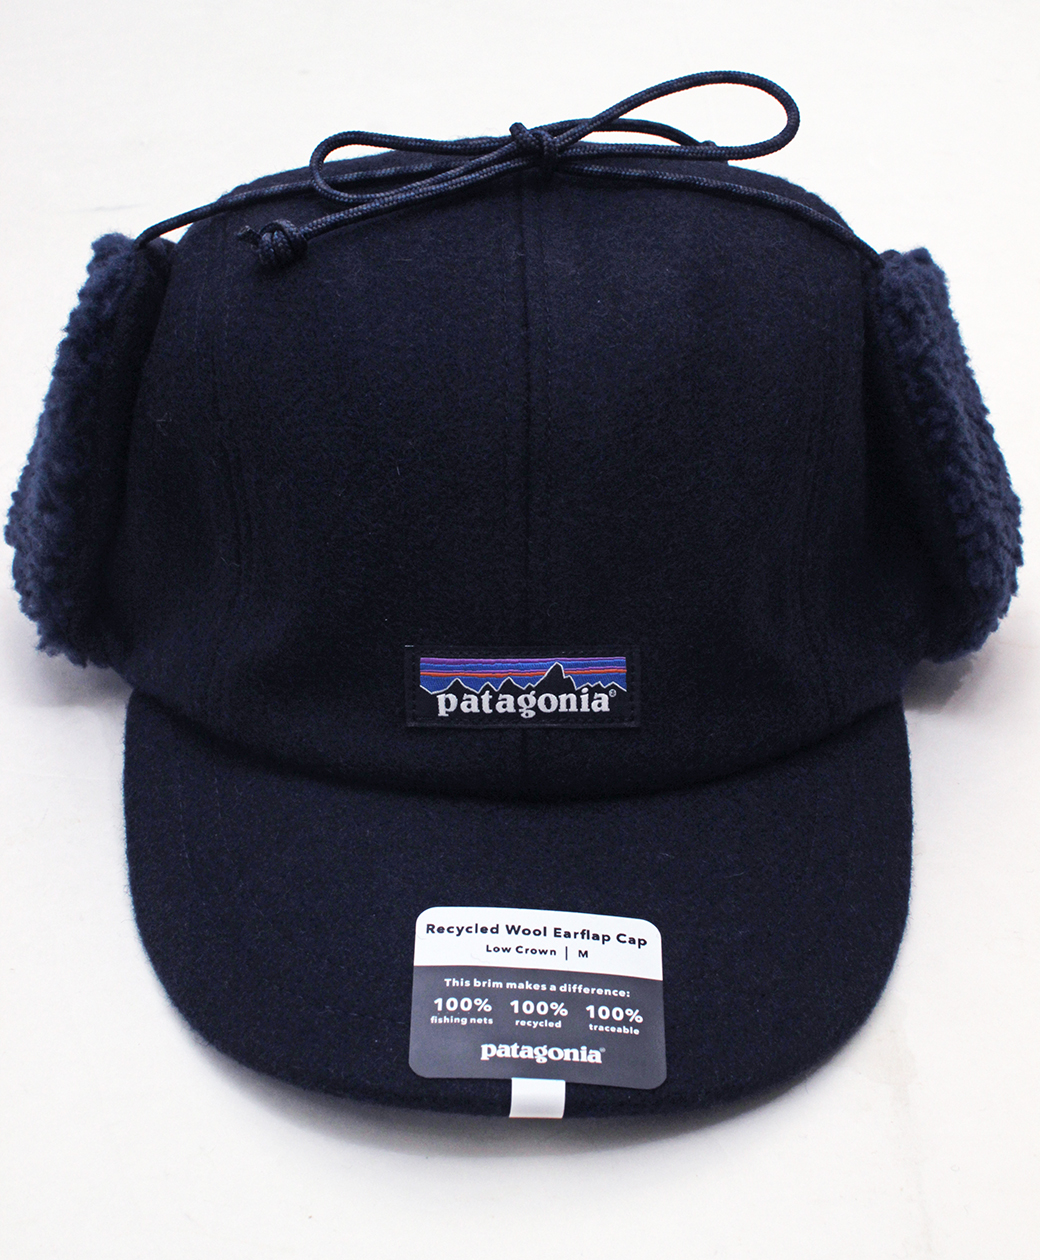 patagonia Recycled Wool  Ear Flap Cap(CNY)